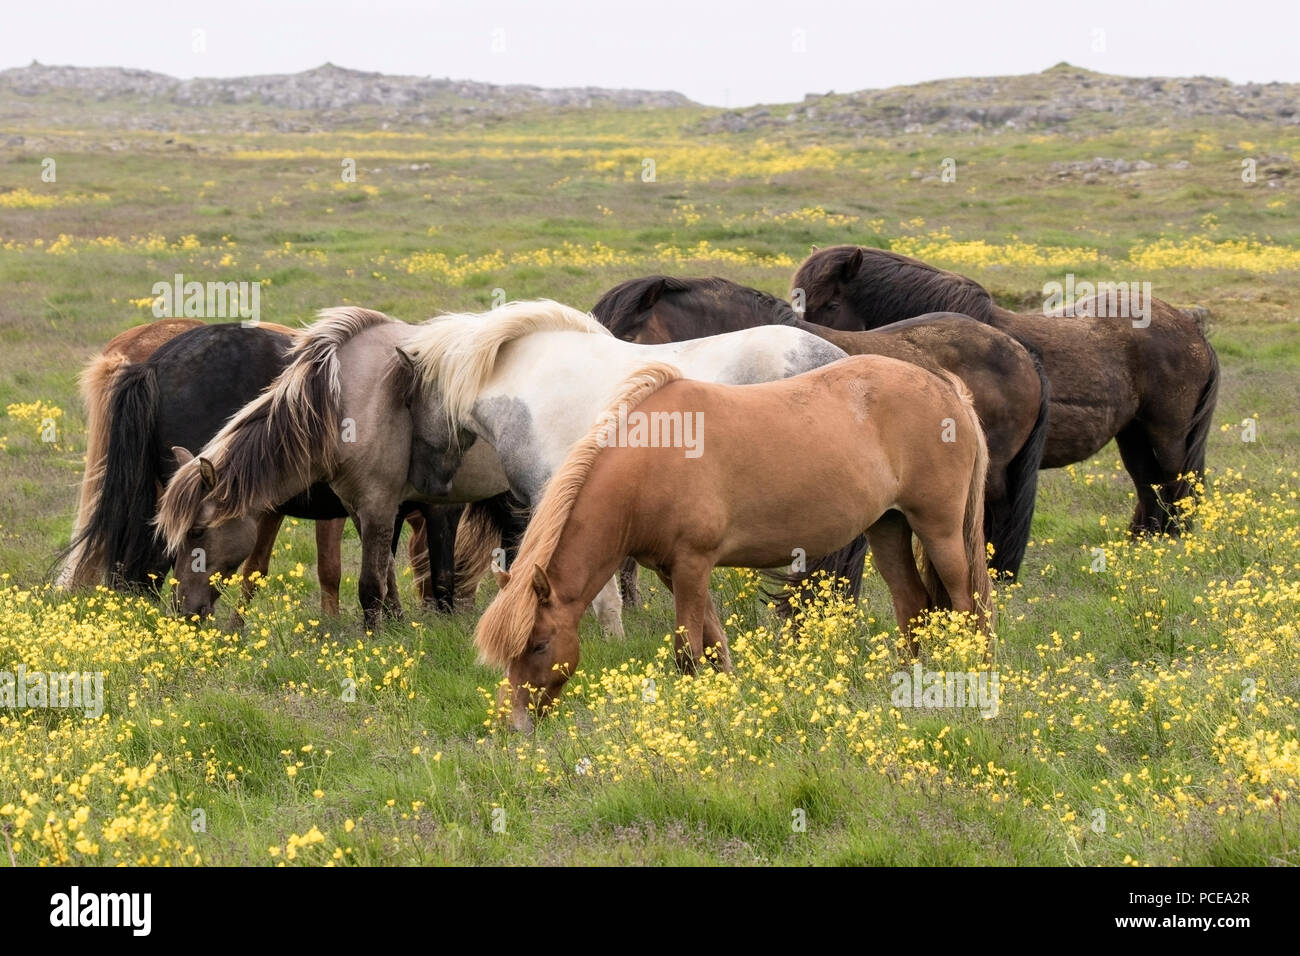 Icelandic horse or Icelandic pony, showing herd of animals in field in Iceland - Stock Image